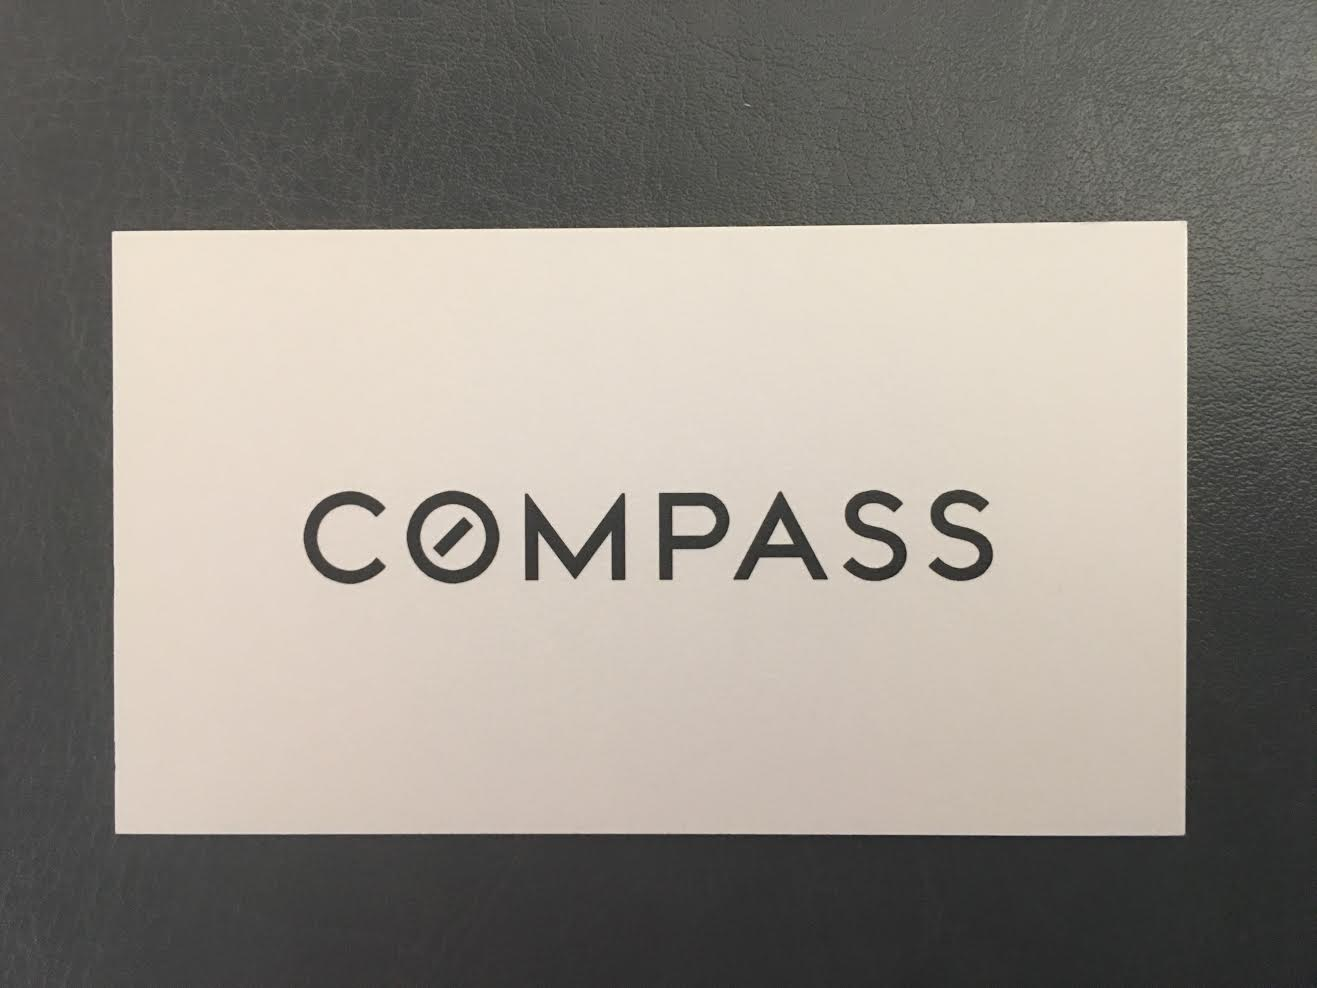 Compass - Real Estate Business Cards